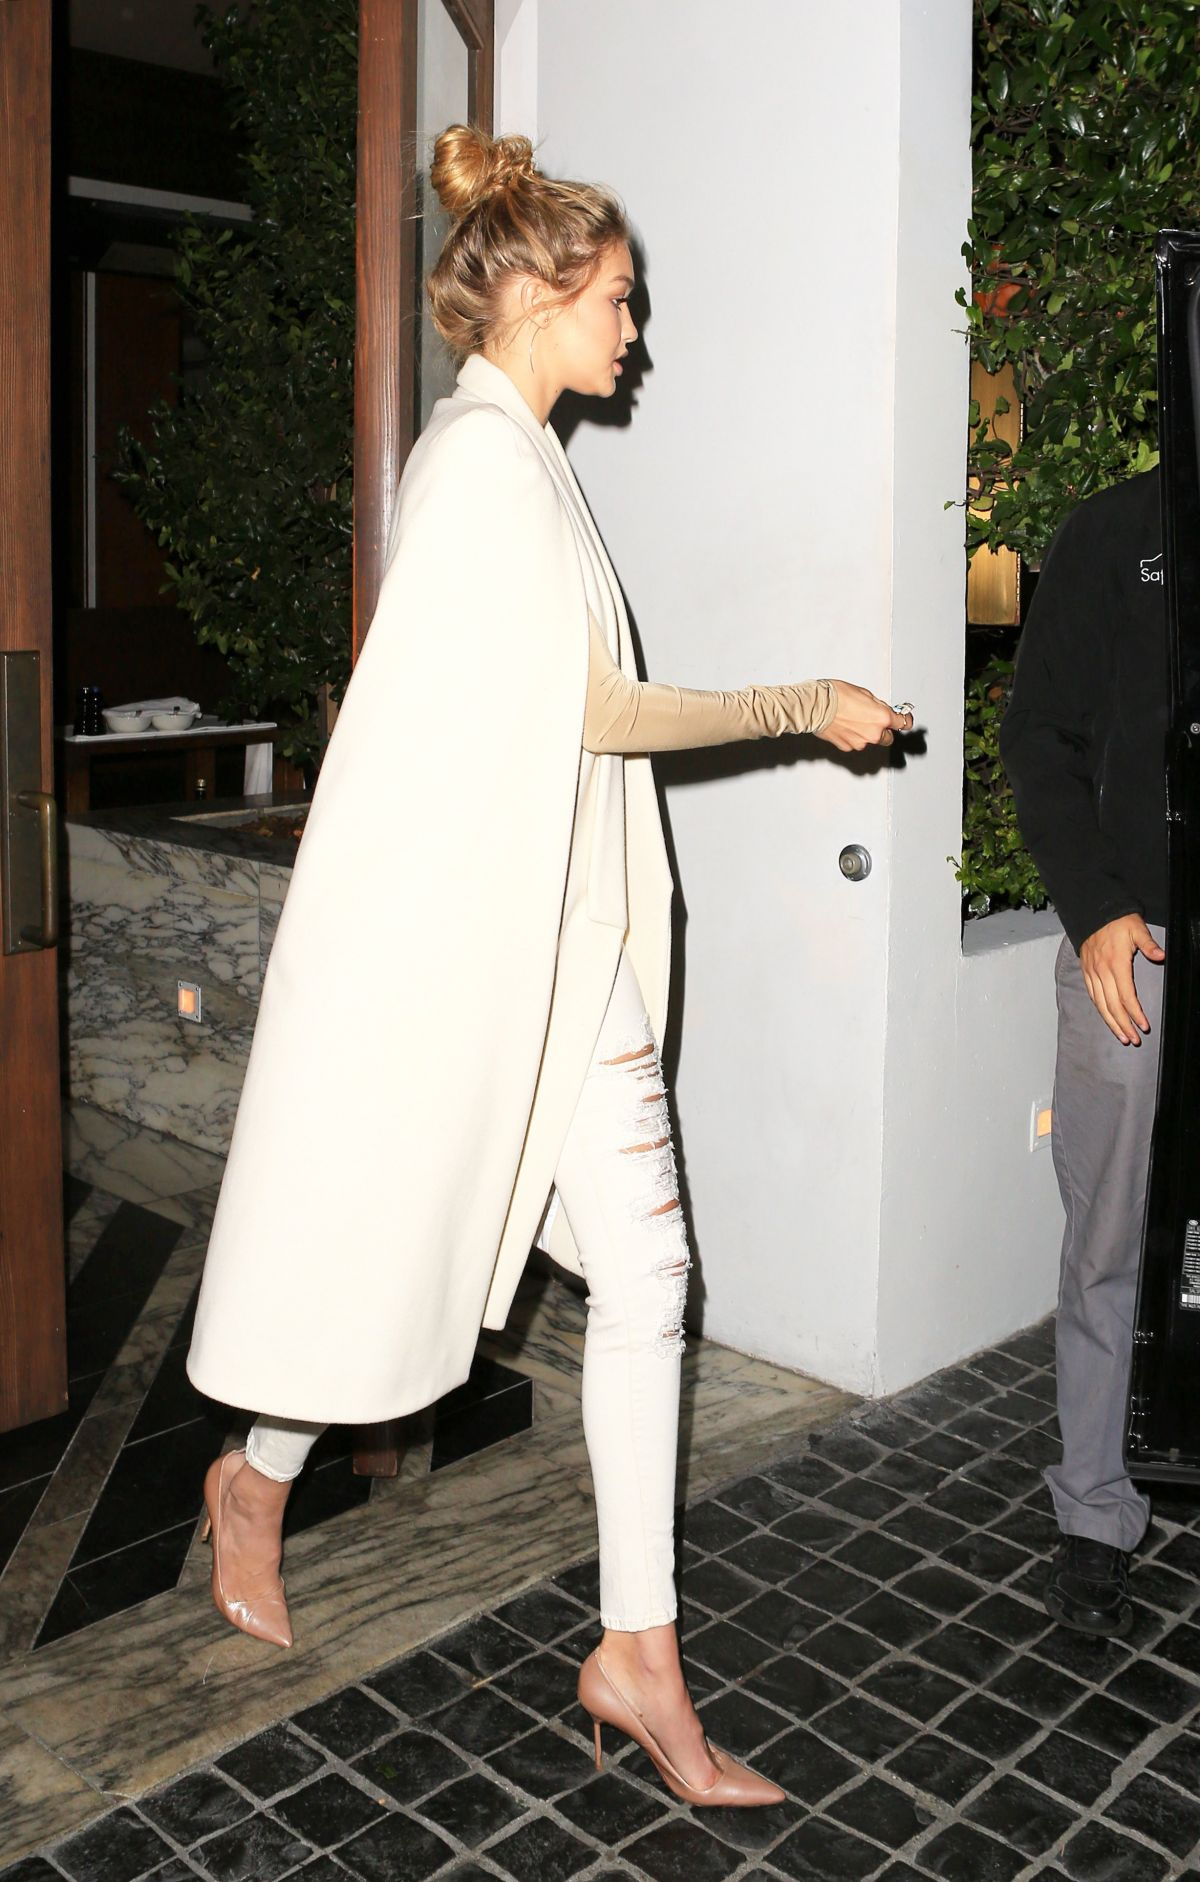 893ace764f GIGI HADID Leaves Cecconi s Restaurant in West Hollywood 11 19 2015